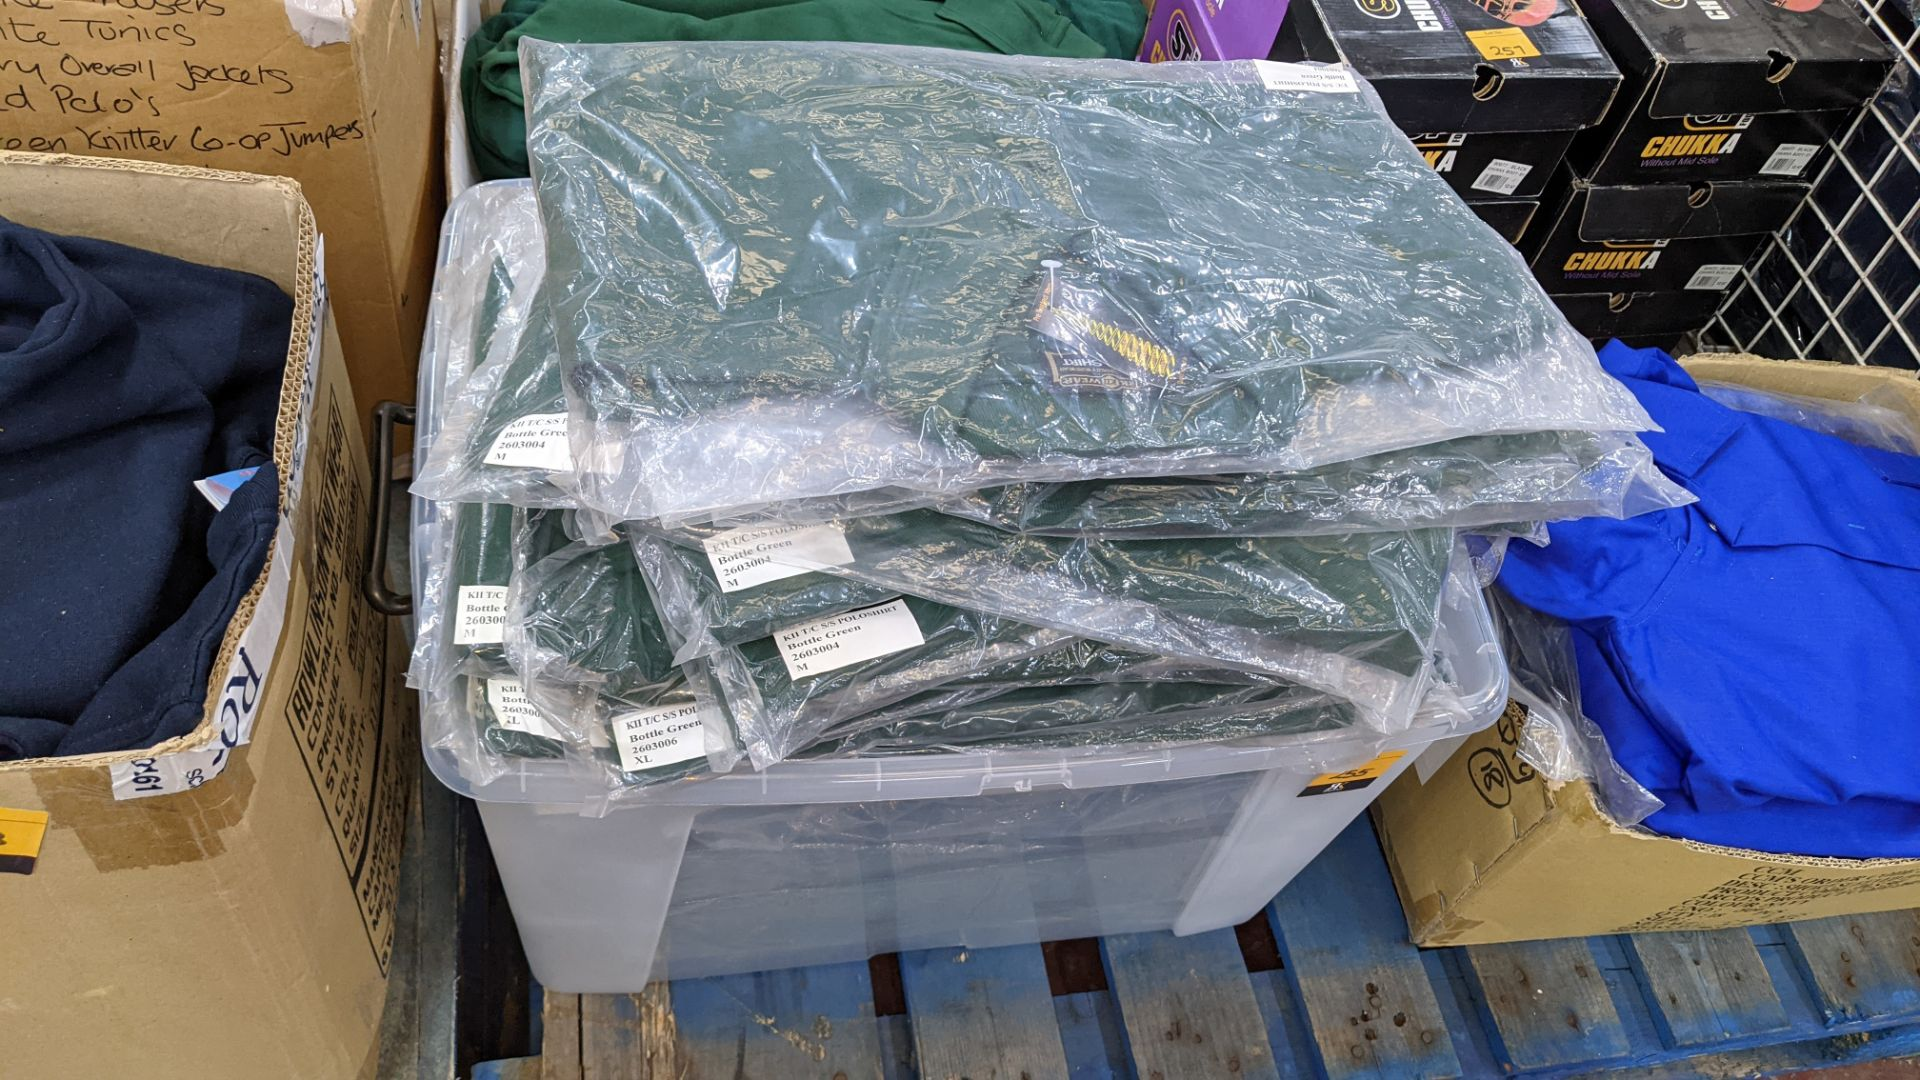 Approx 80 off green polo shirts & sweatshirts - the contents of 2 boxes/crates. NB boxes/crates exc - Image 3 of 6